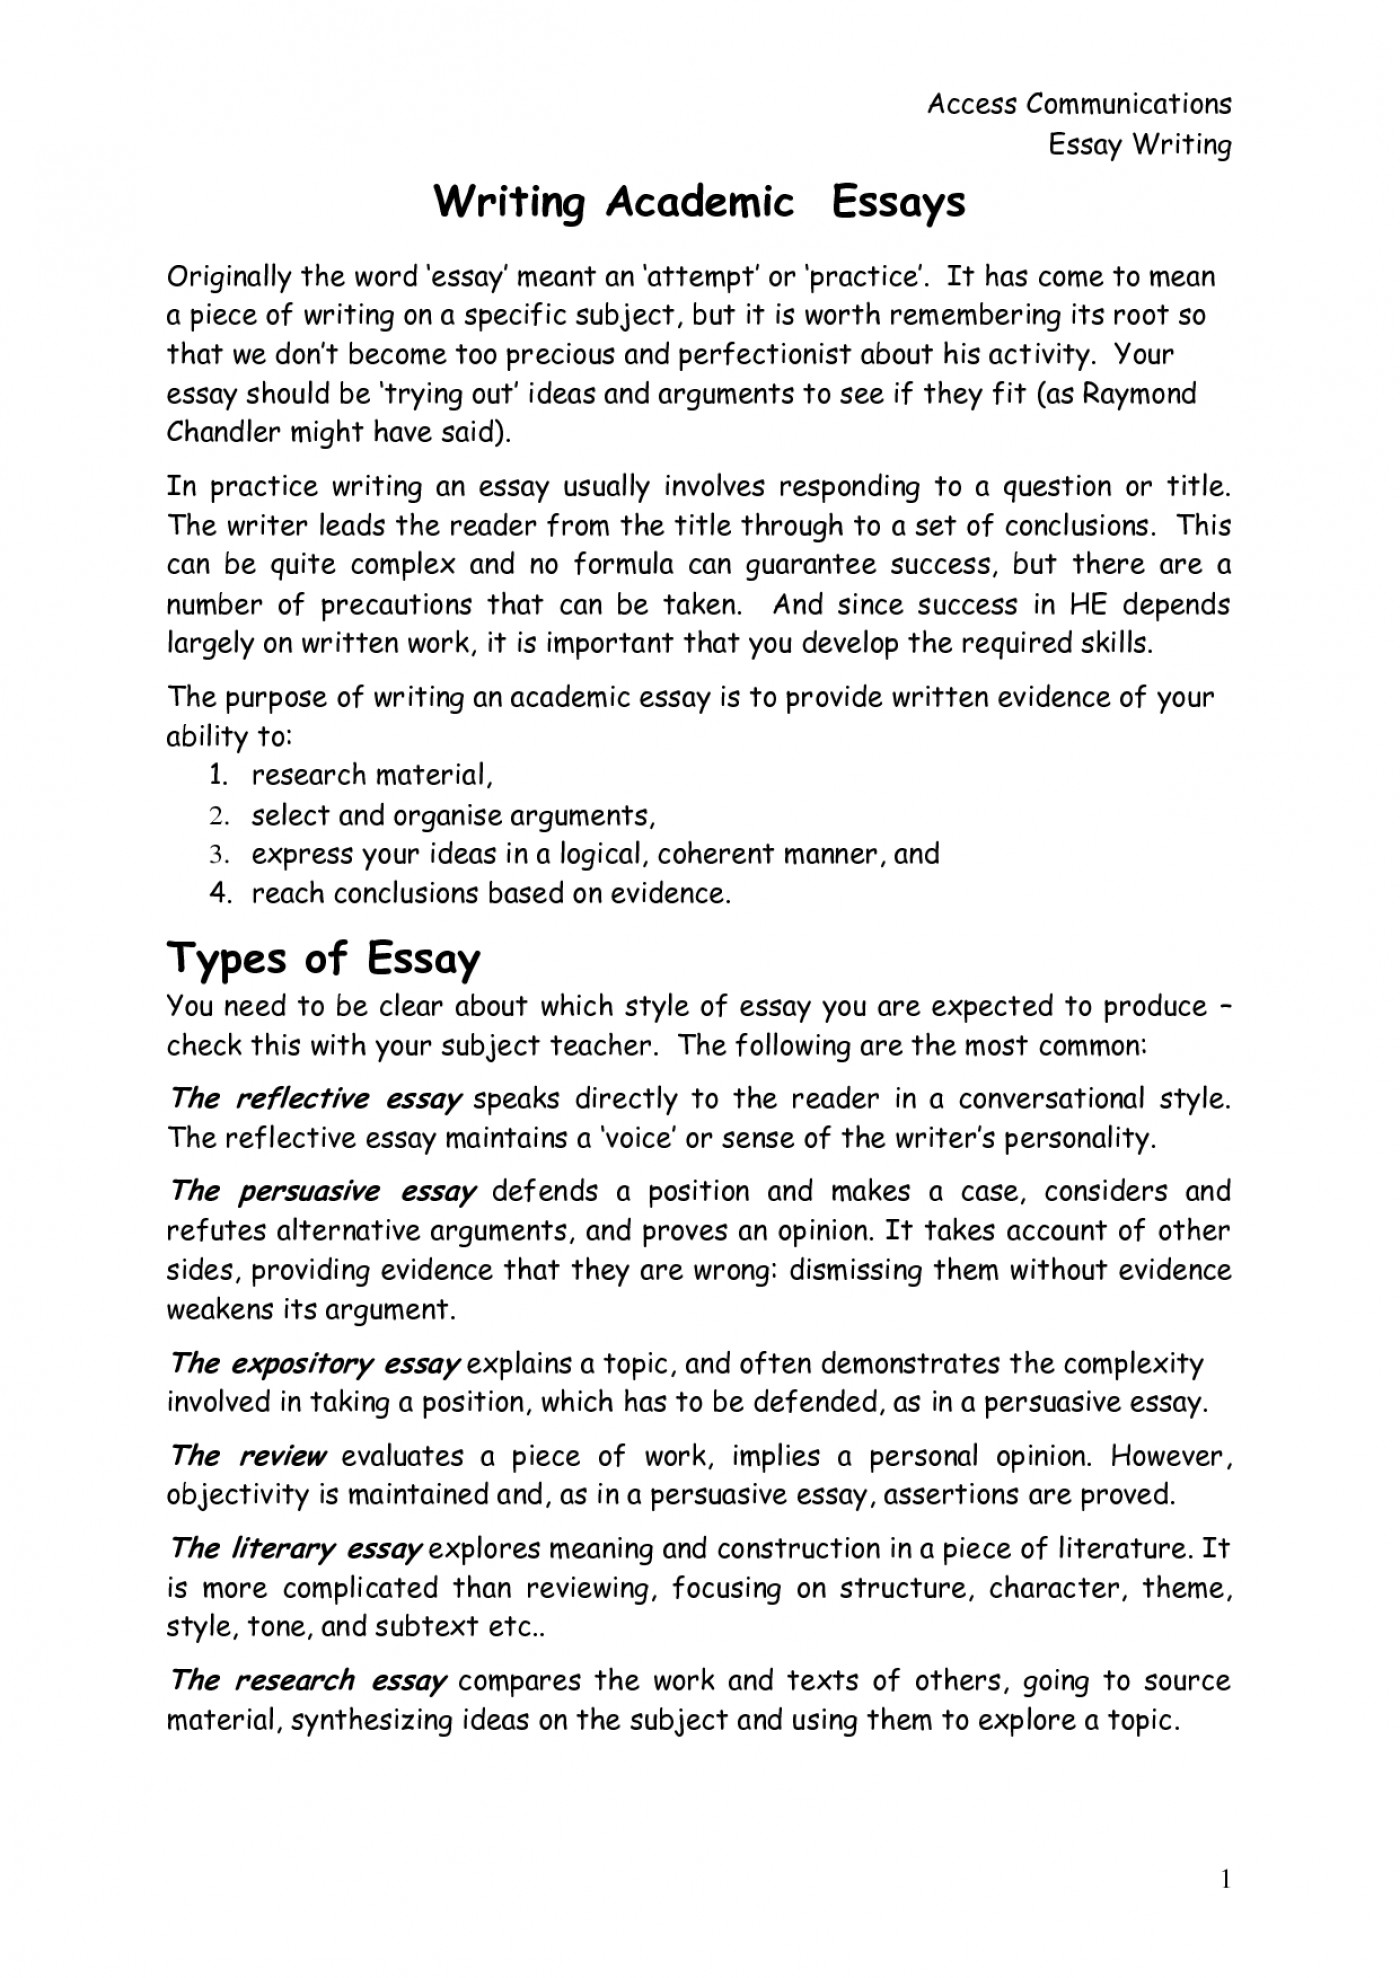 017 Essay Example Write For Me Amazing My Discount Code Online Free 1400